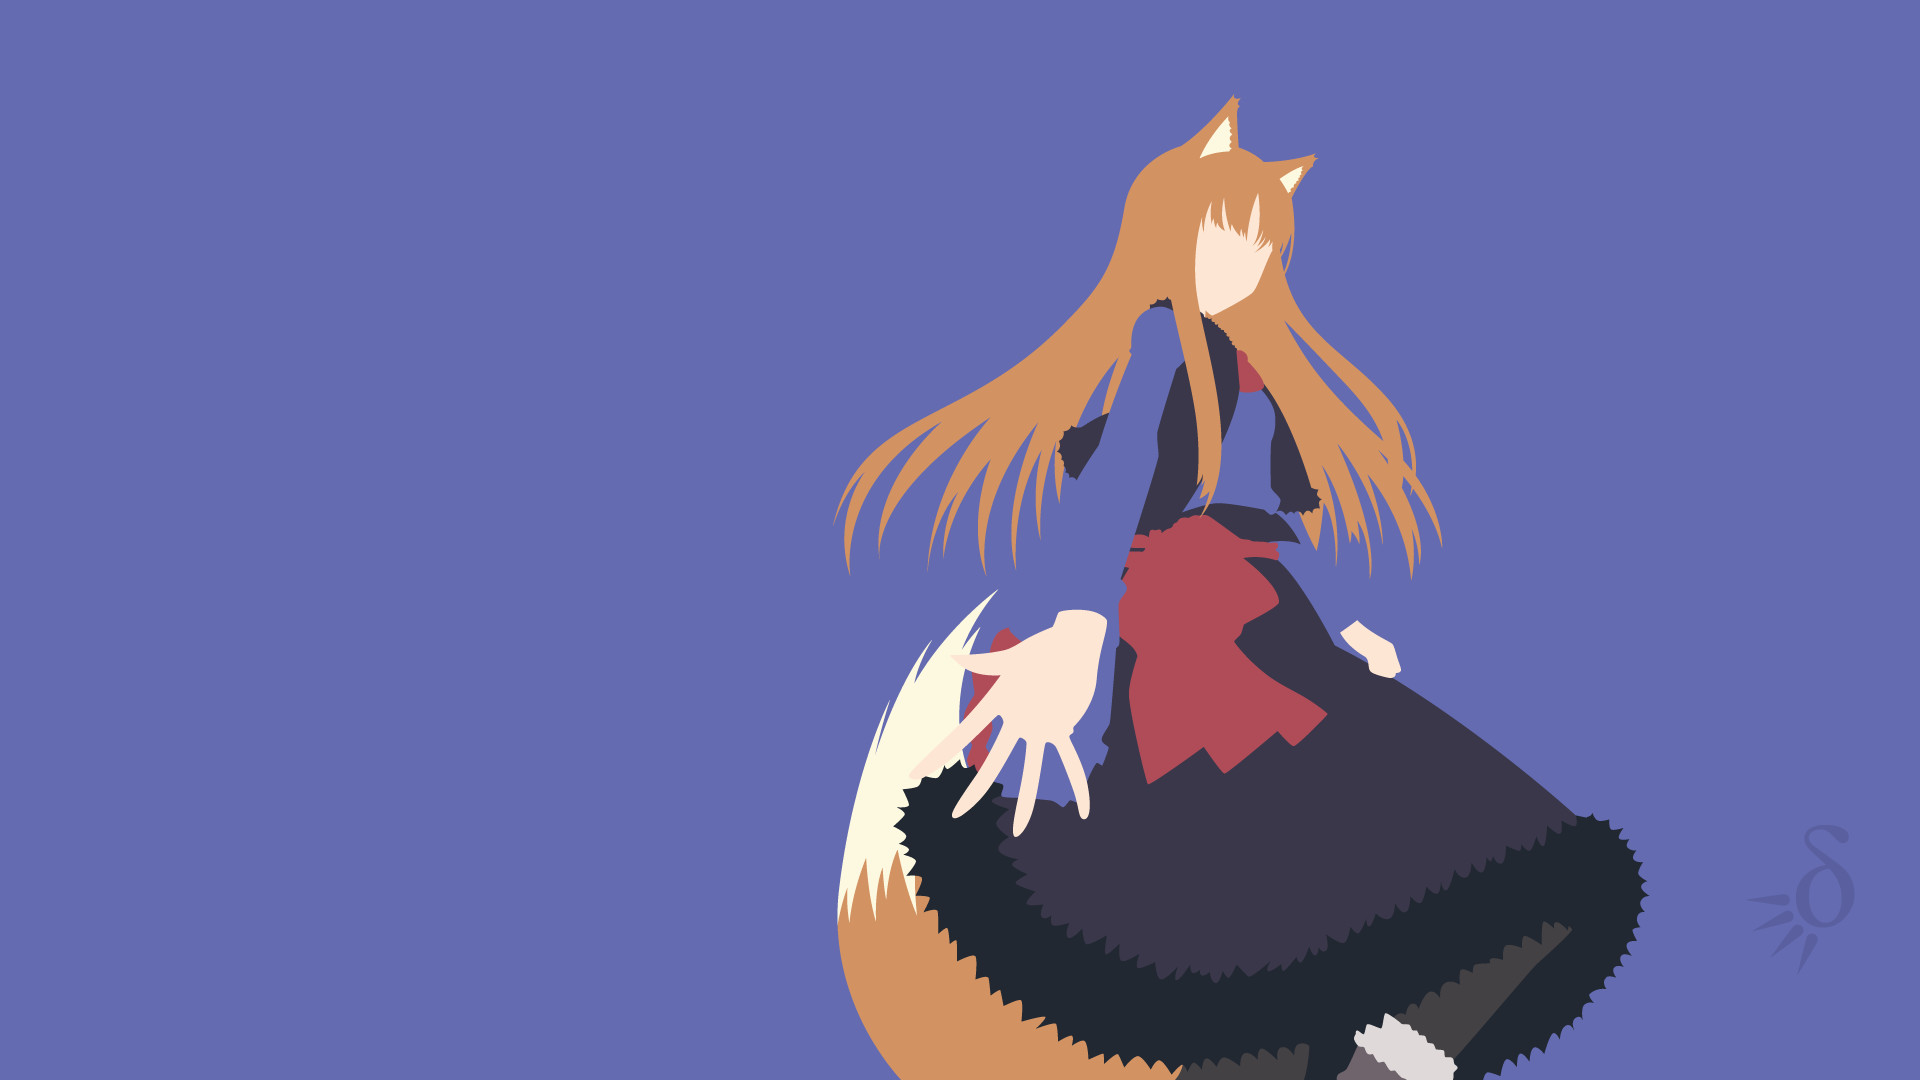 Minimalist anime wallpapers 79 images - 1920x1080 wallpapers anime ...